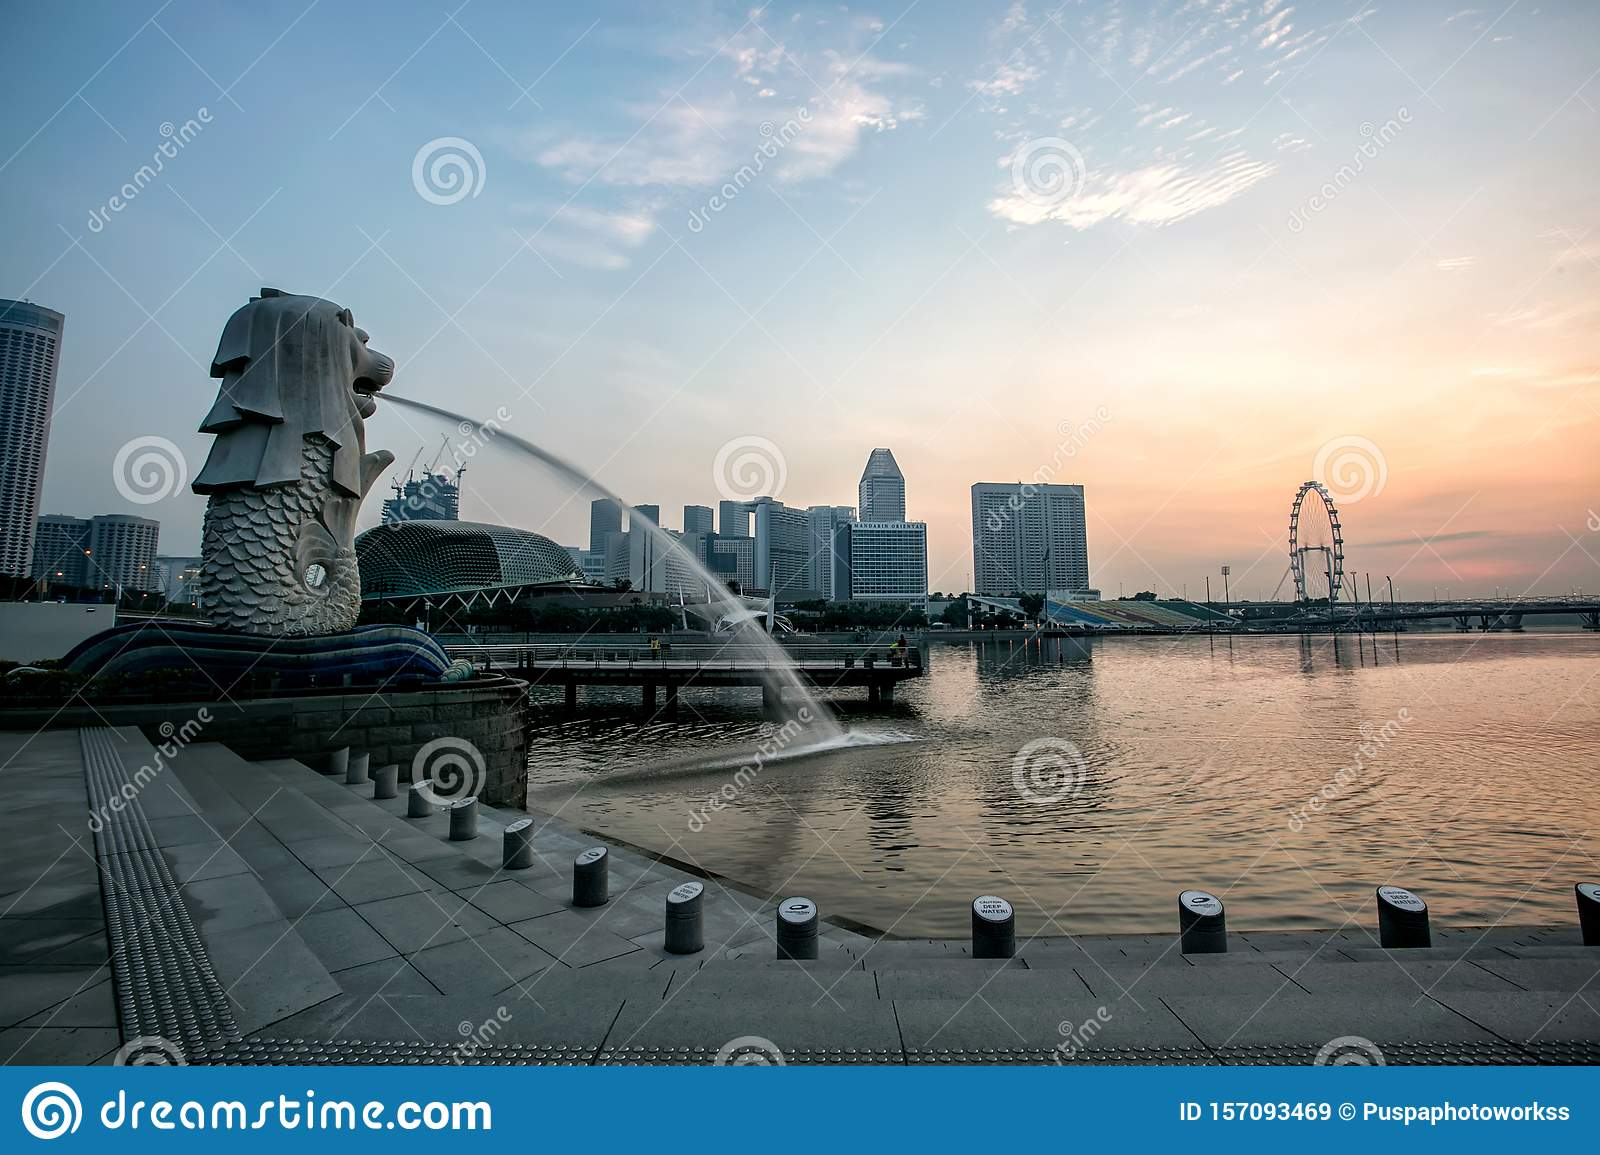 Beautiful Merlion Park is a Icon of Singapore When Sunrise.